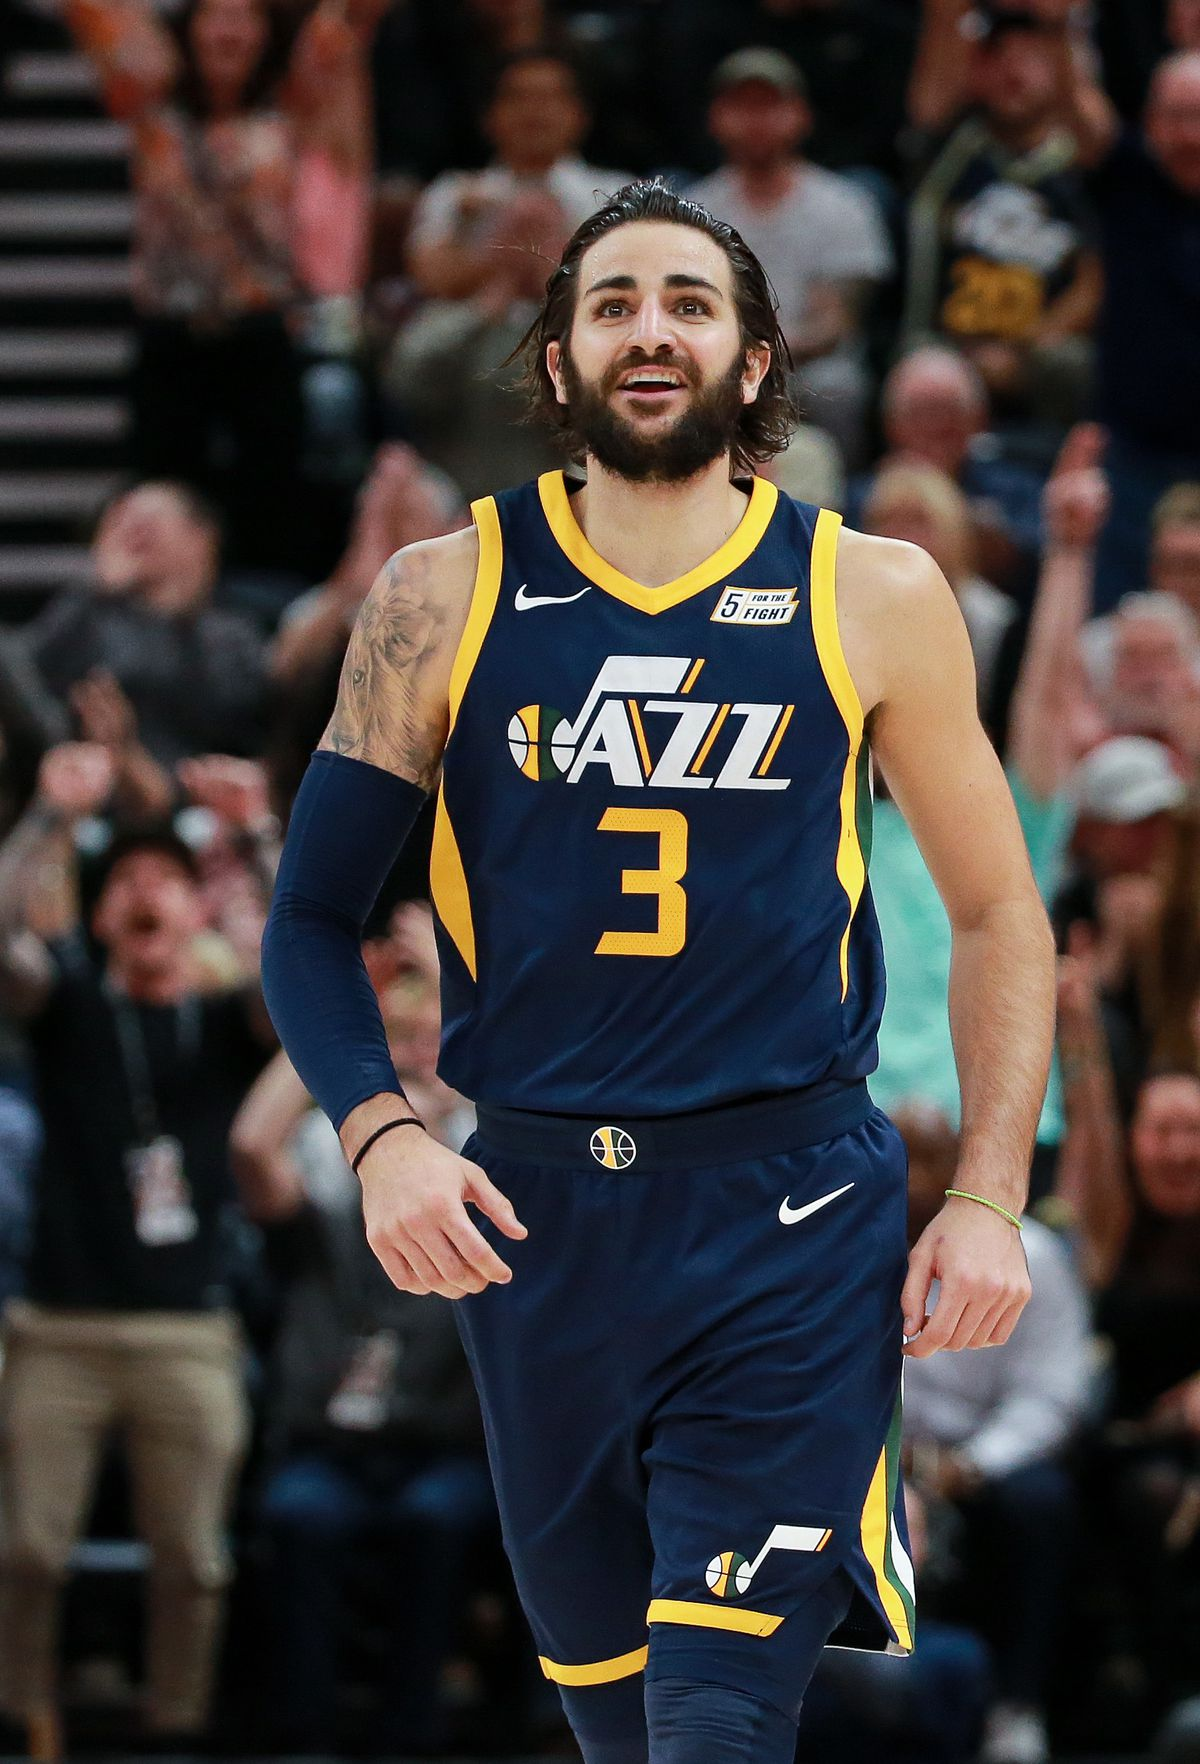 The Real Ricky Rubio Is Finally Ready to Stand Up